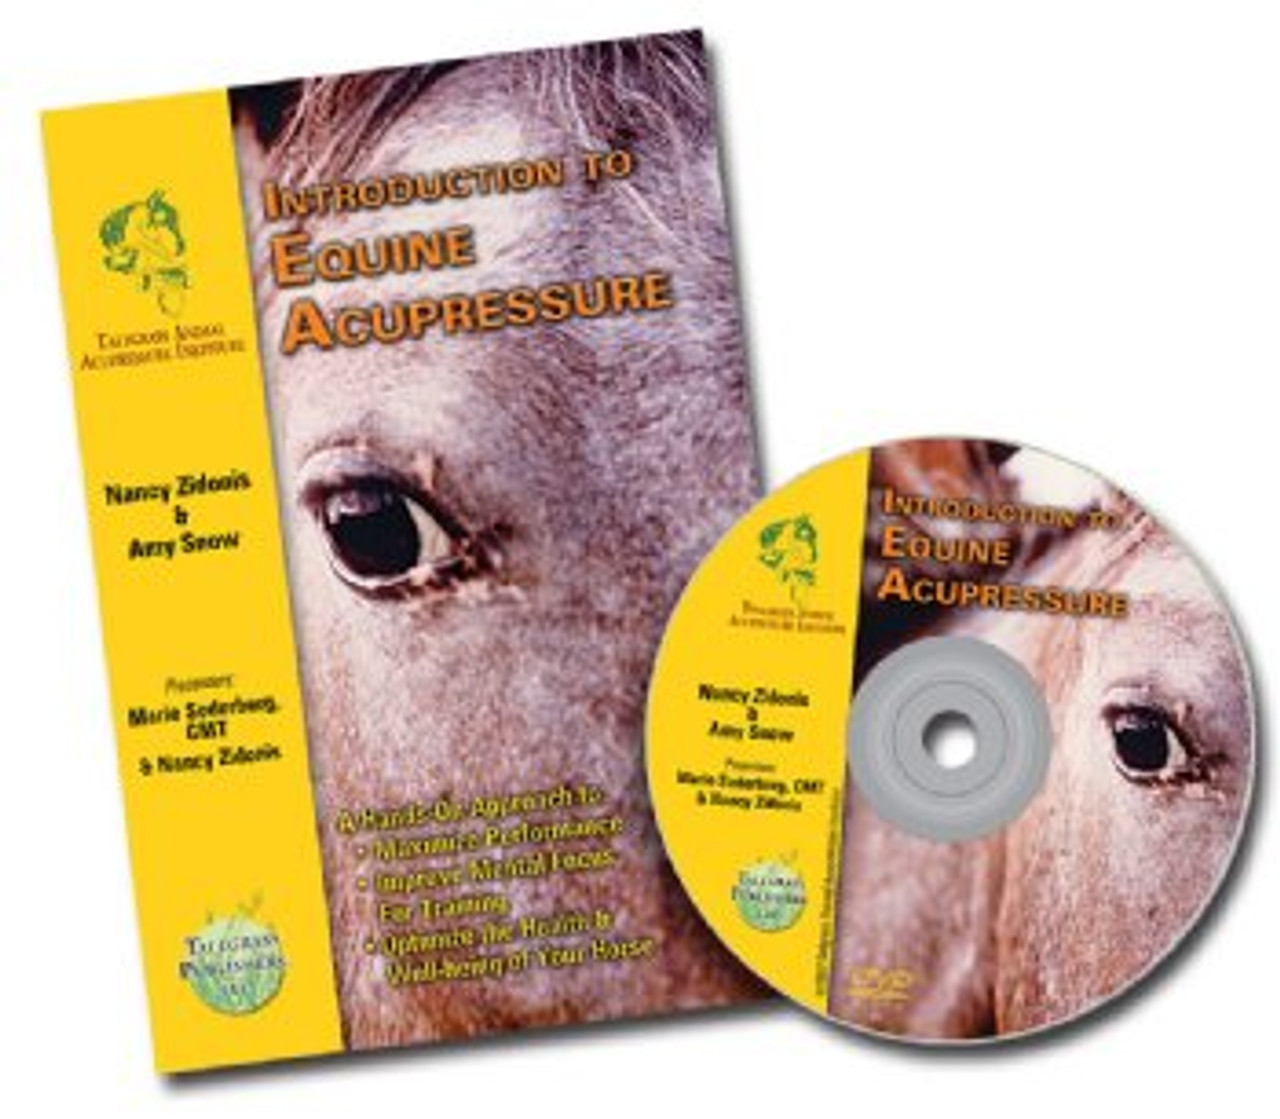 ACUHorse: A Guide to Equine Acupressure & Introduction to Equine Acupressure DVD